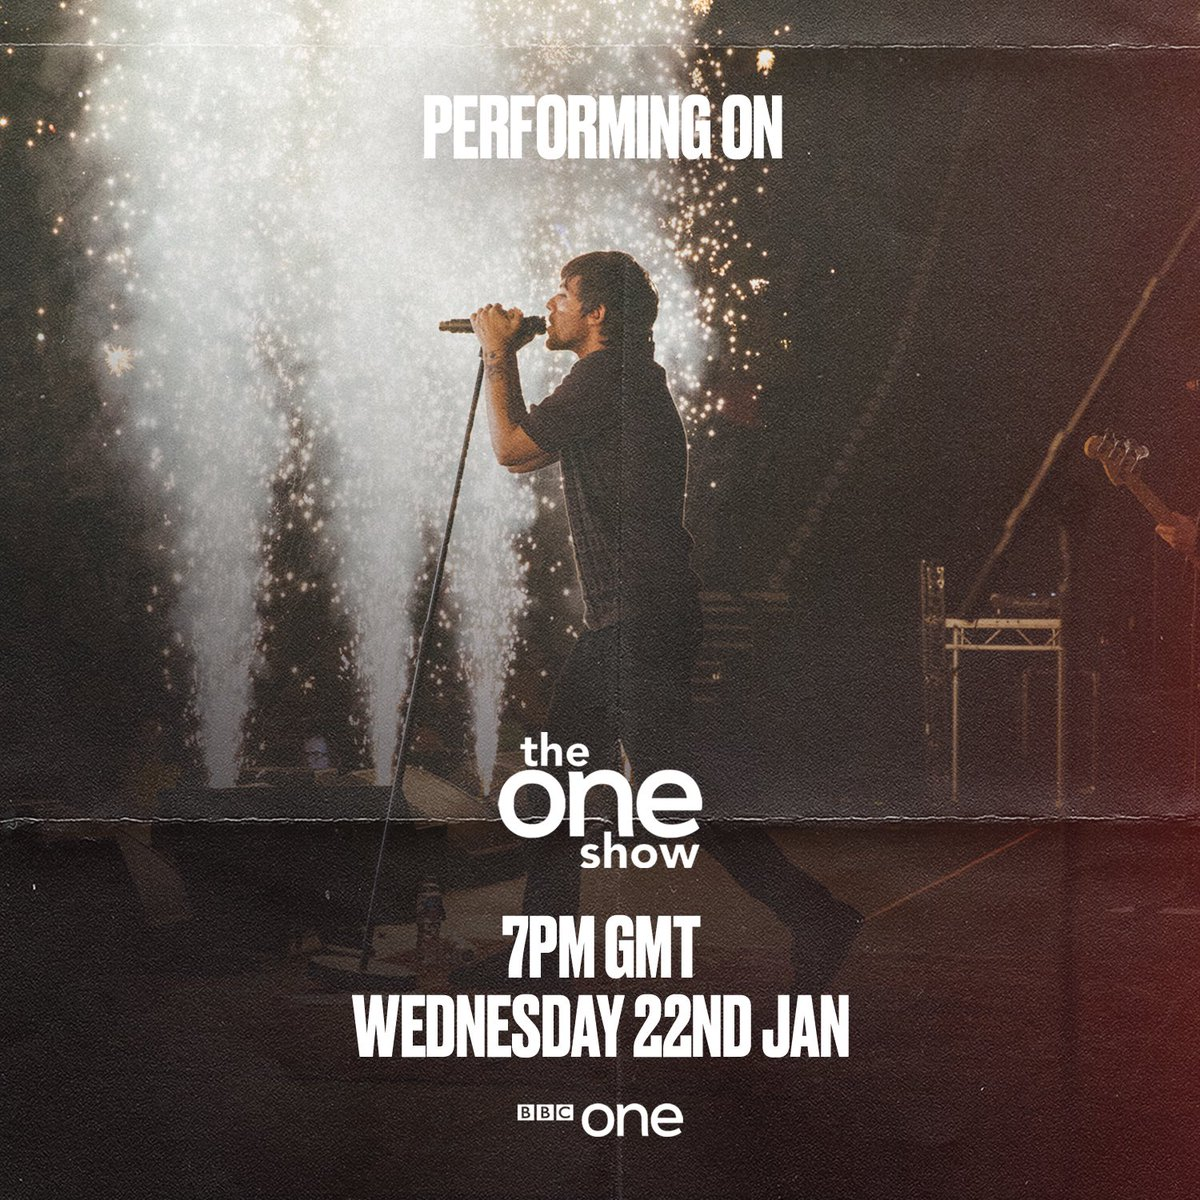 Excited to be performing on @BBCTheOneShow tomorrow. Tune in from 7pm !